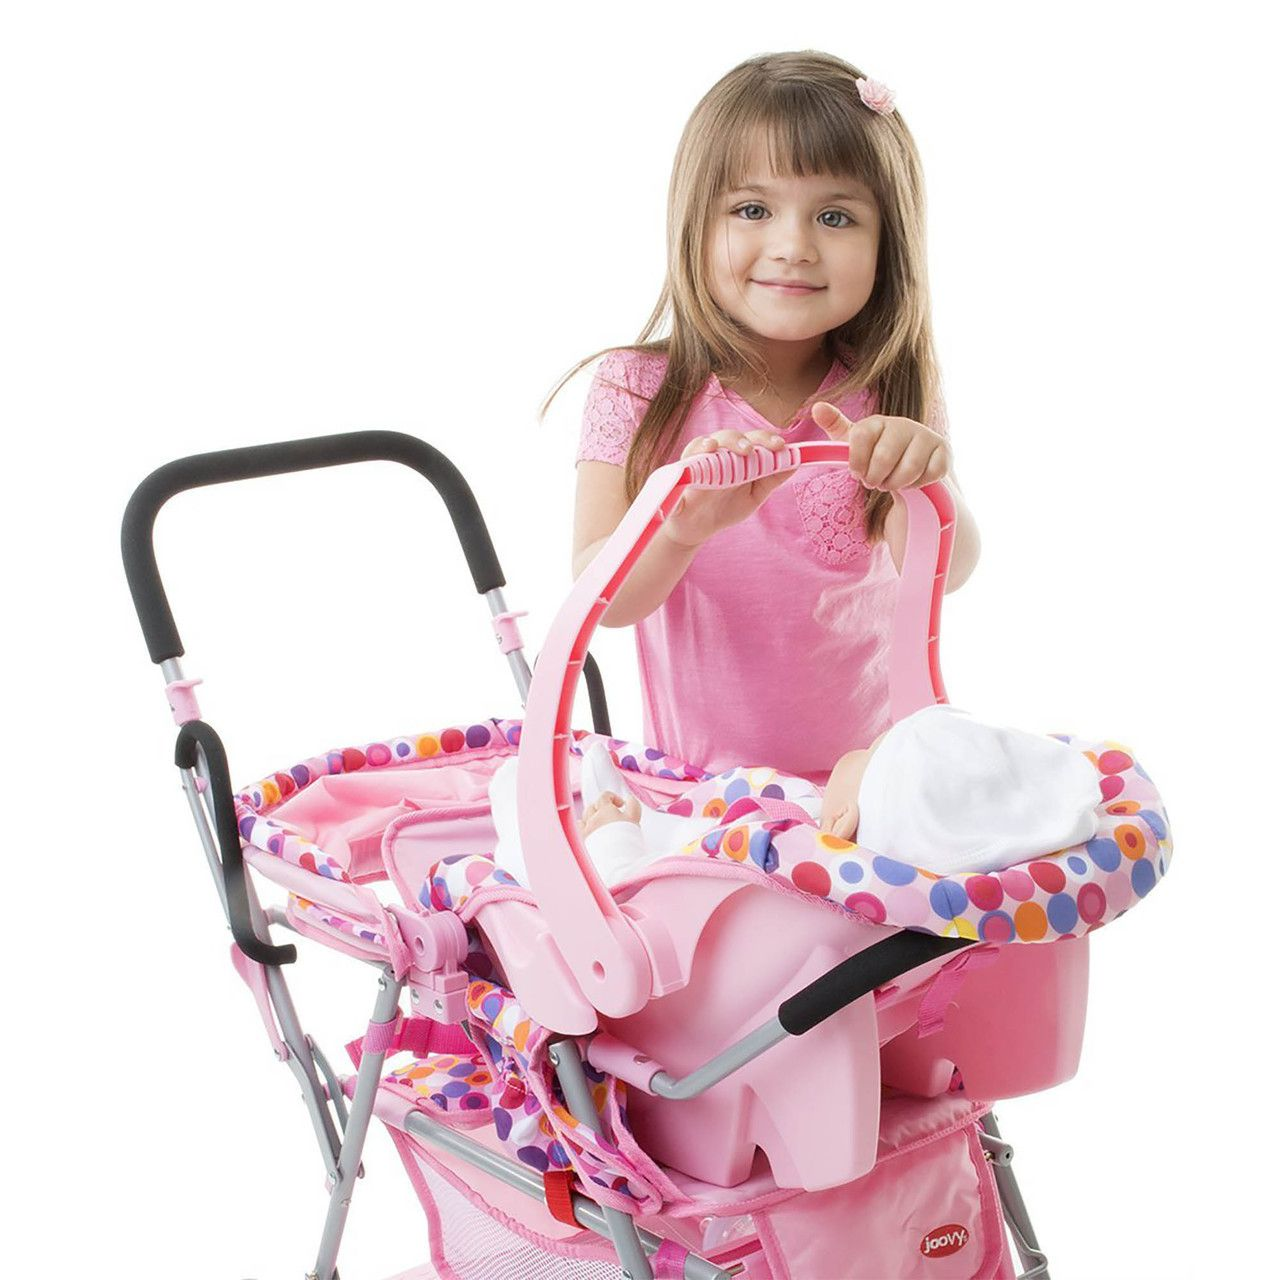 Toy Car Seat Baby car seats Baby doll strollers Baby